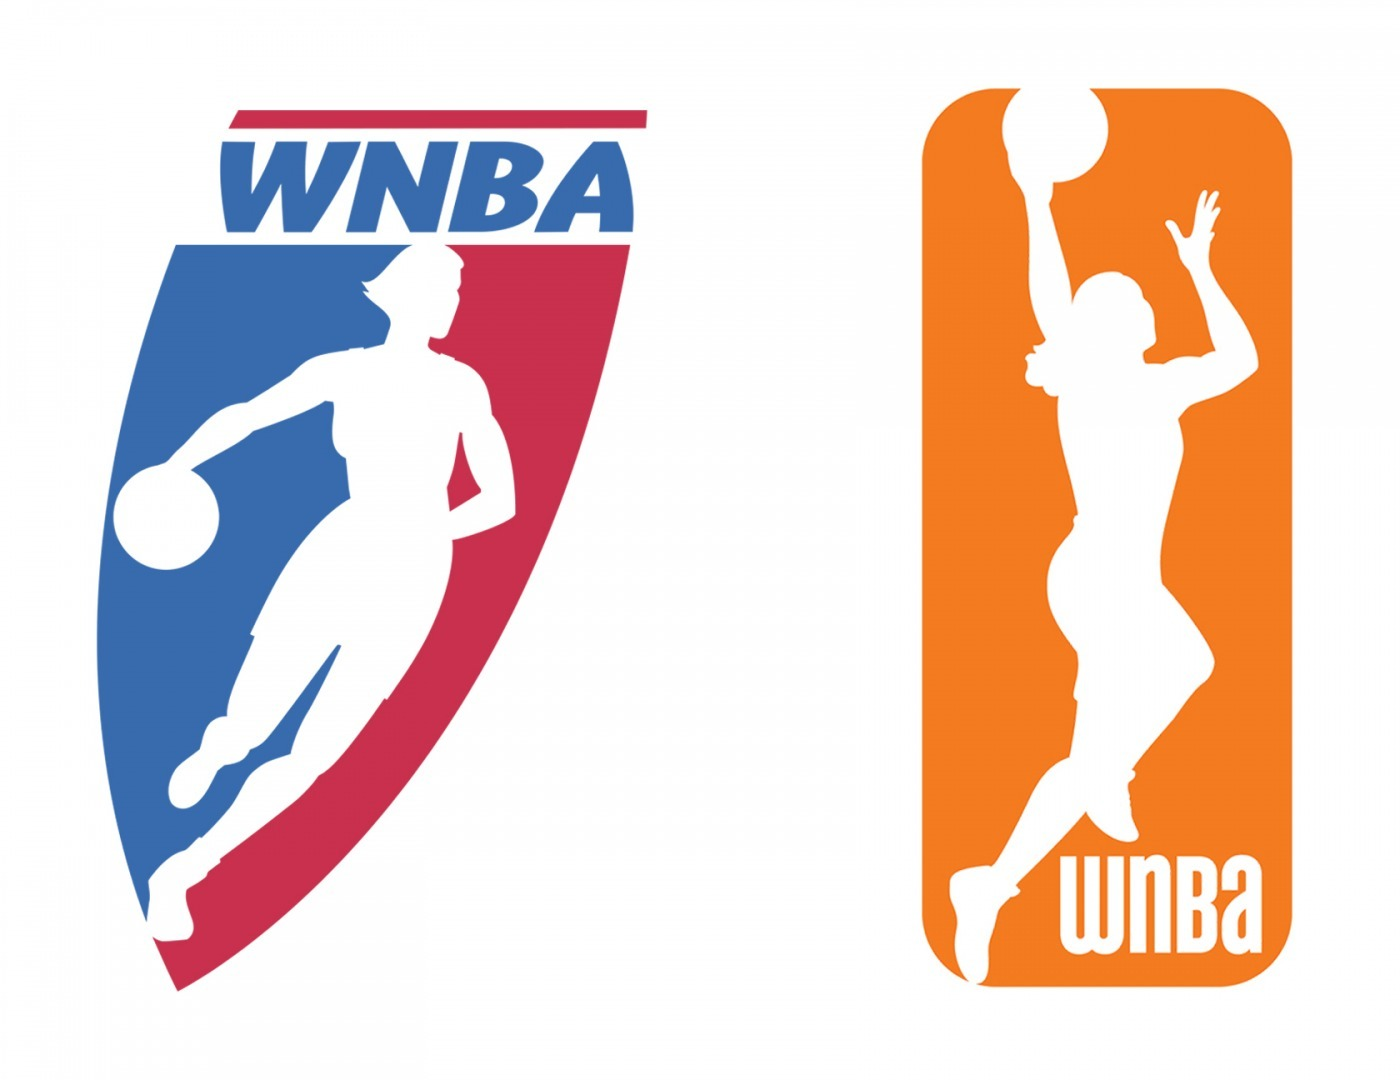 The older logos of the WNBA. On the left, the original WNBA logo from the organization's inception in 1997. On the right, the rebranded logo from 2013.